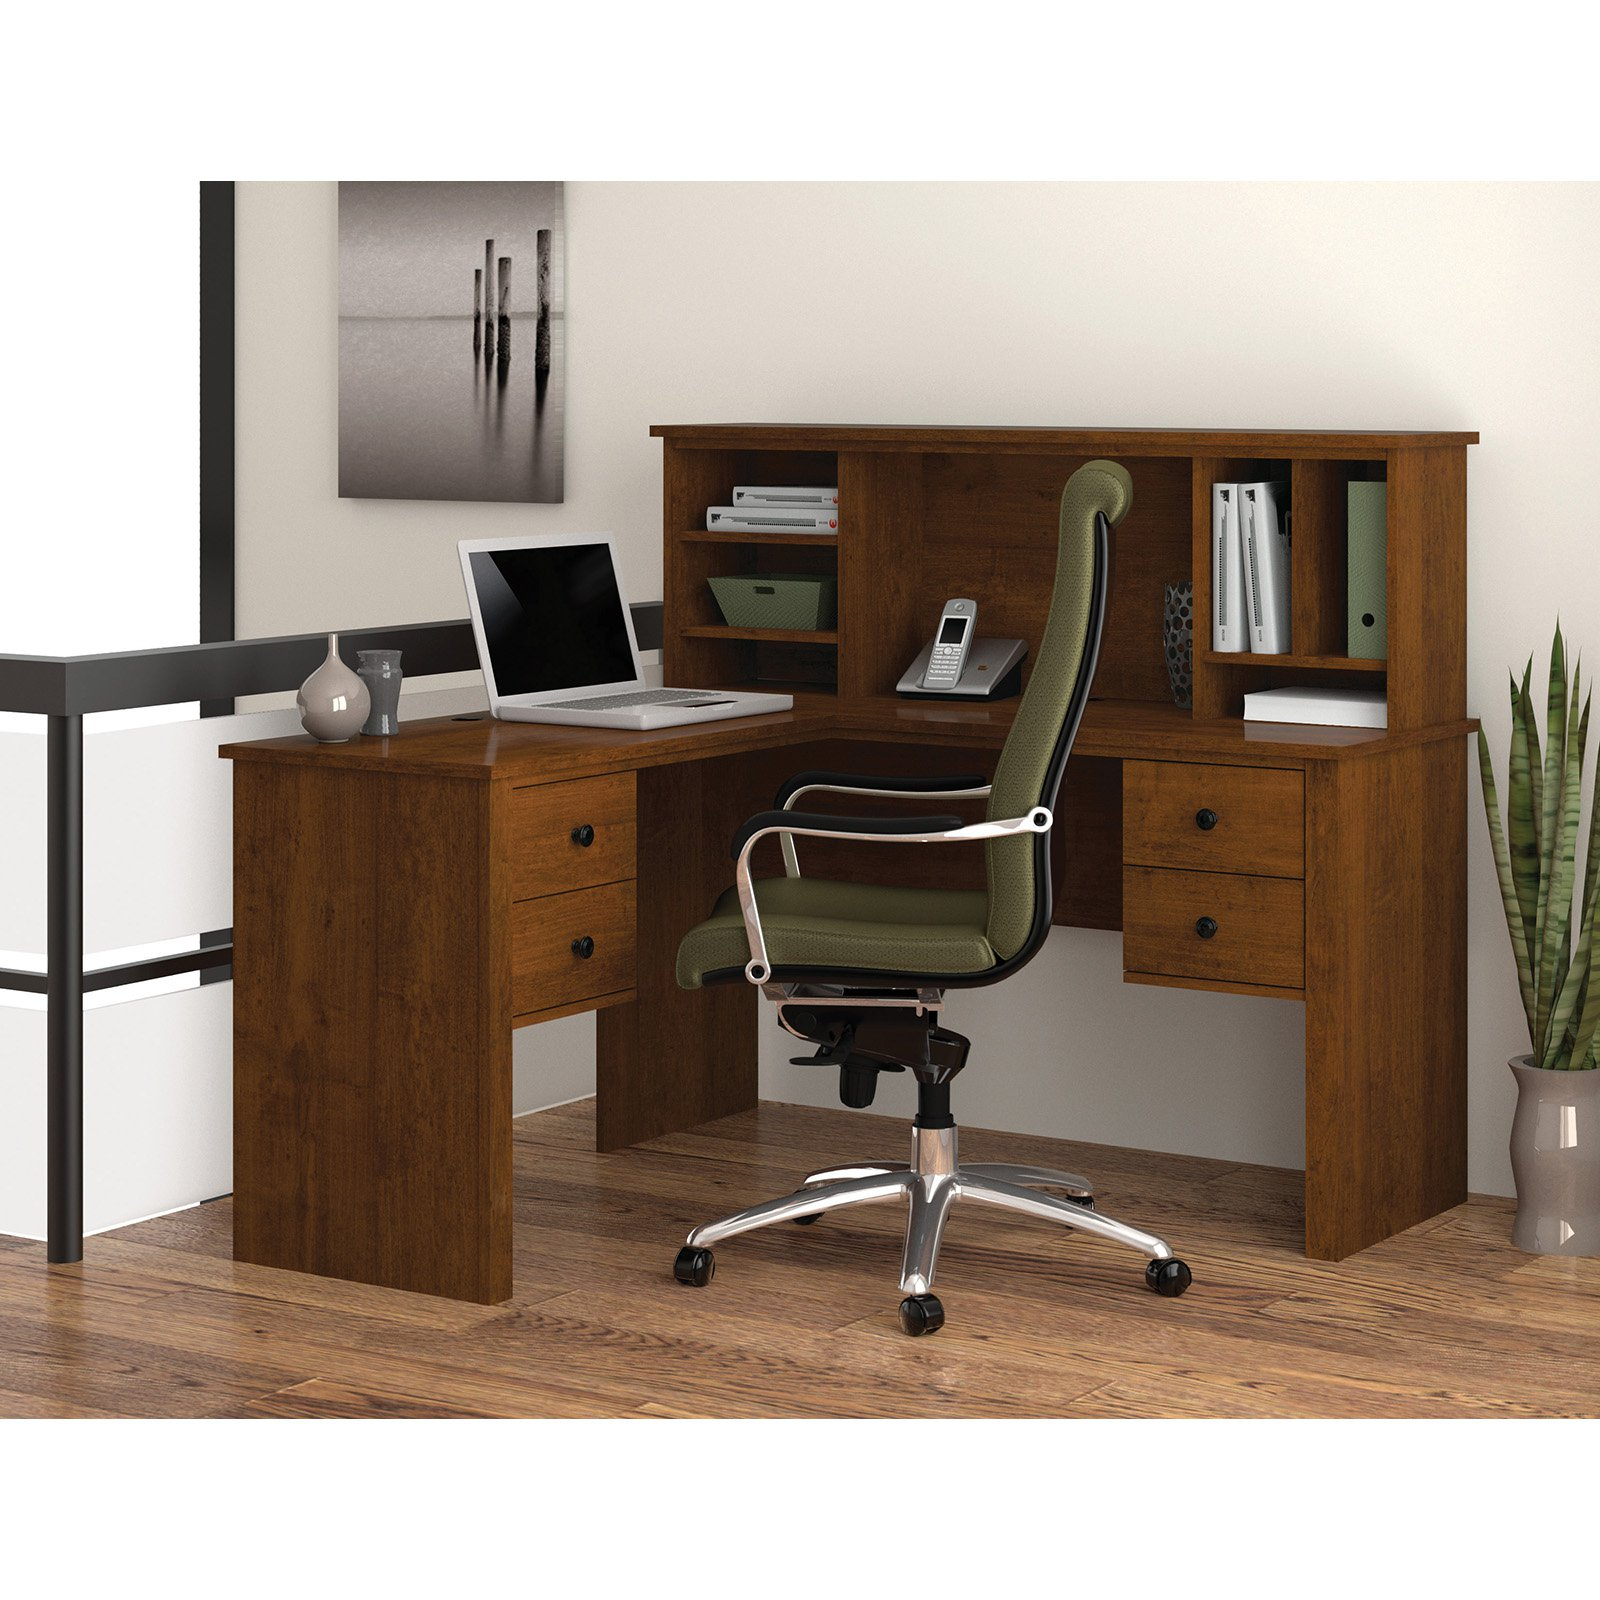 Bestar 45850-63 Somerville L-Shaped Desk with Hutch Tuscany Brown by Bestar